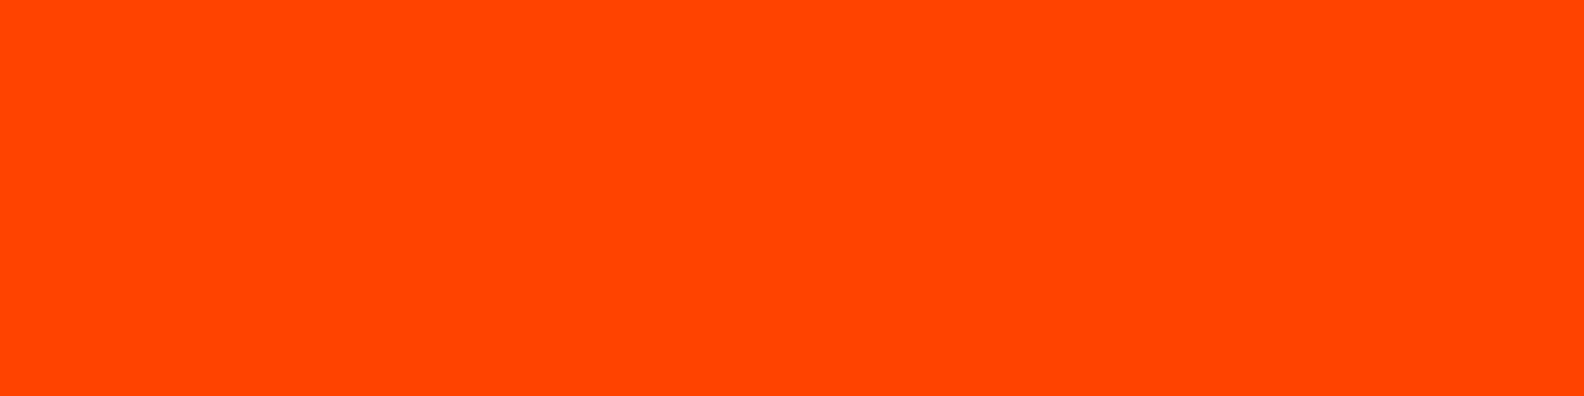 1584x396 Orange-red Solid Color Background